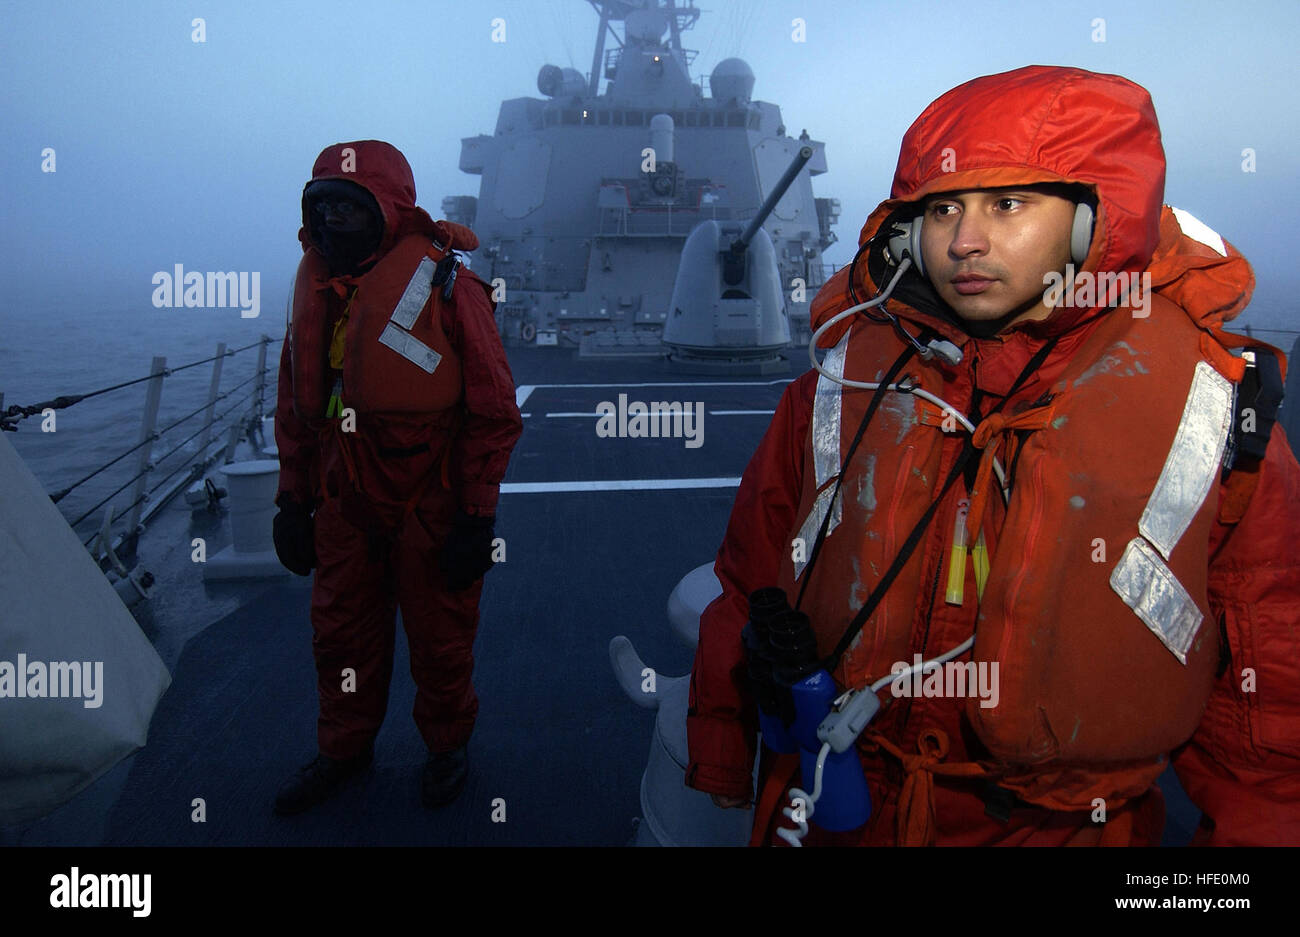 040612-N-3642E-003 Baltic Sea (June 12, 2004) - Personnelman 3rd Class Denzel Christopher, left, from New York City, Stock Photo